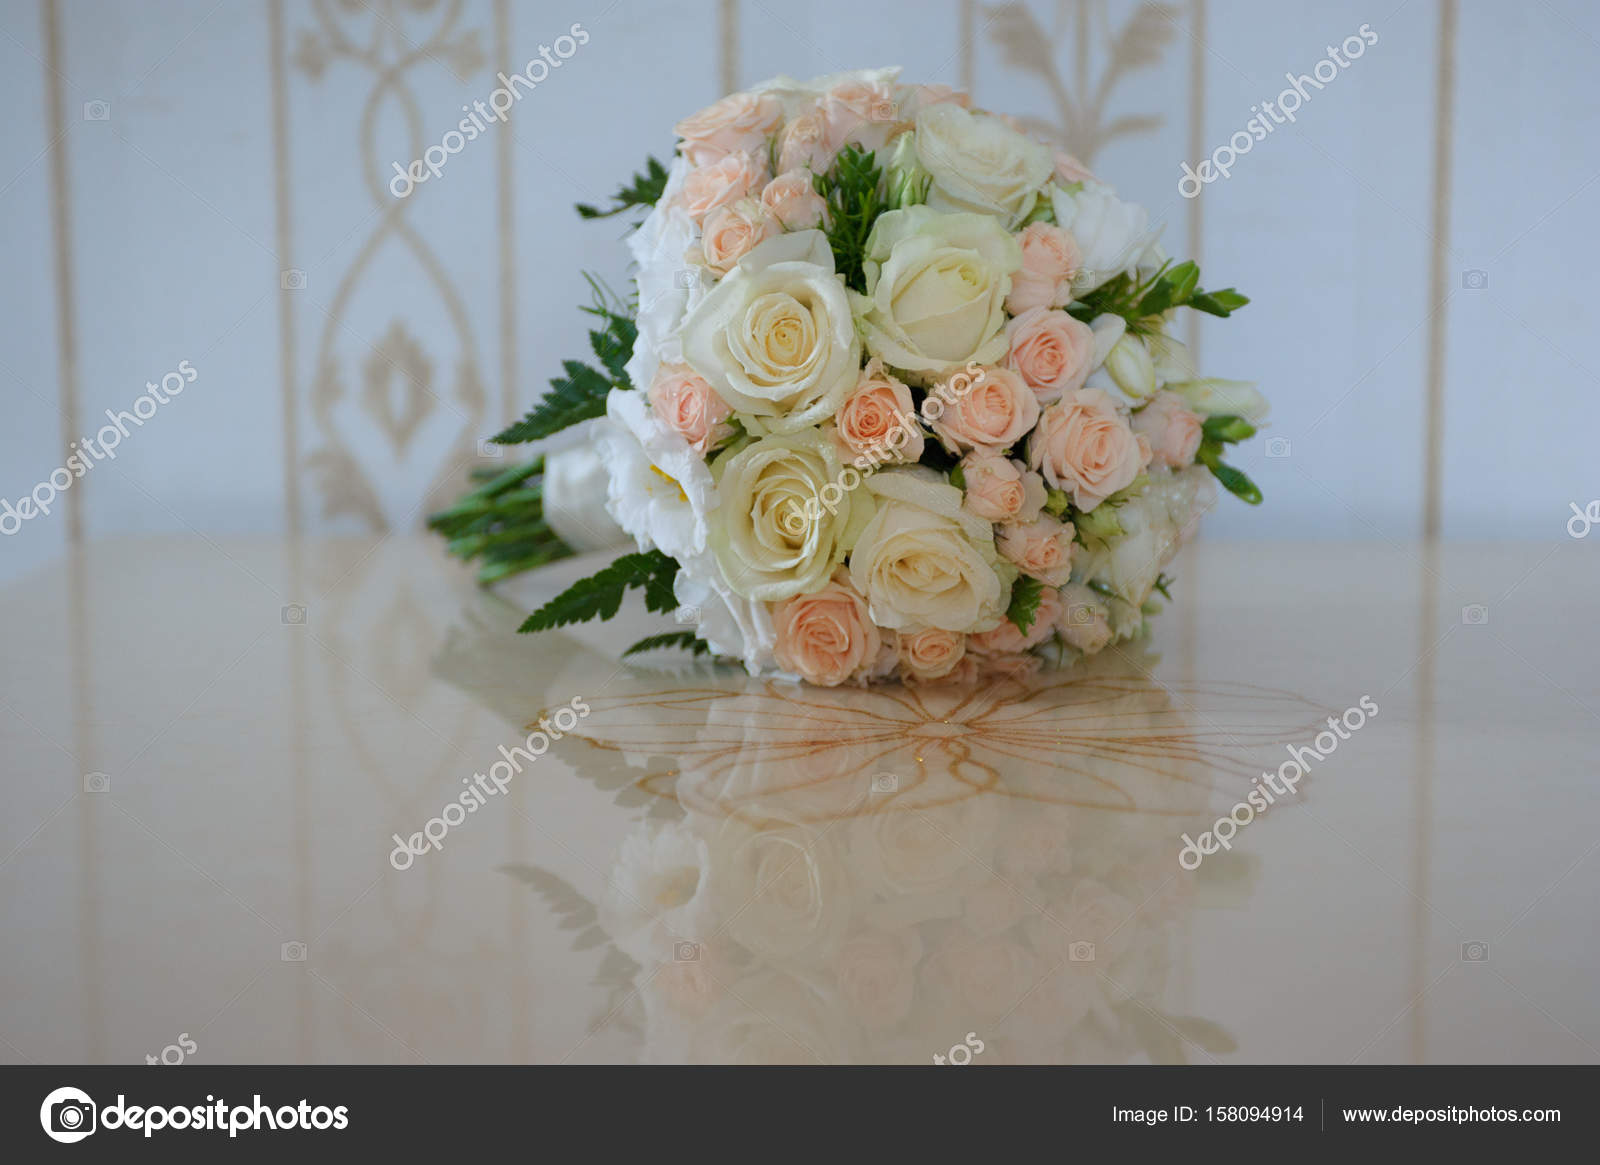 Bouquet Sposa Con Rose.Wedding Bouquet With White And Pink Roses Stock Photo